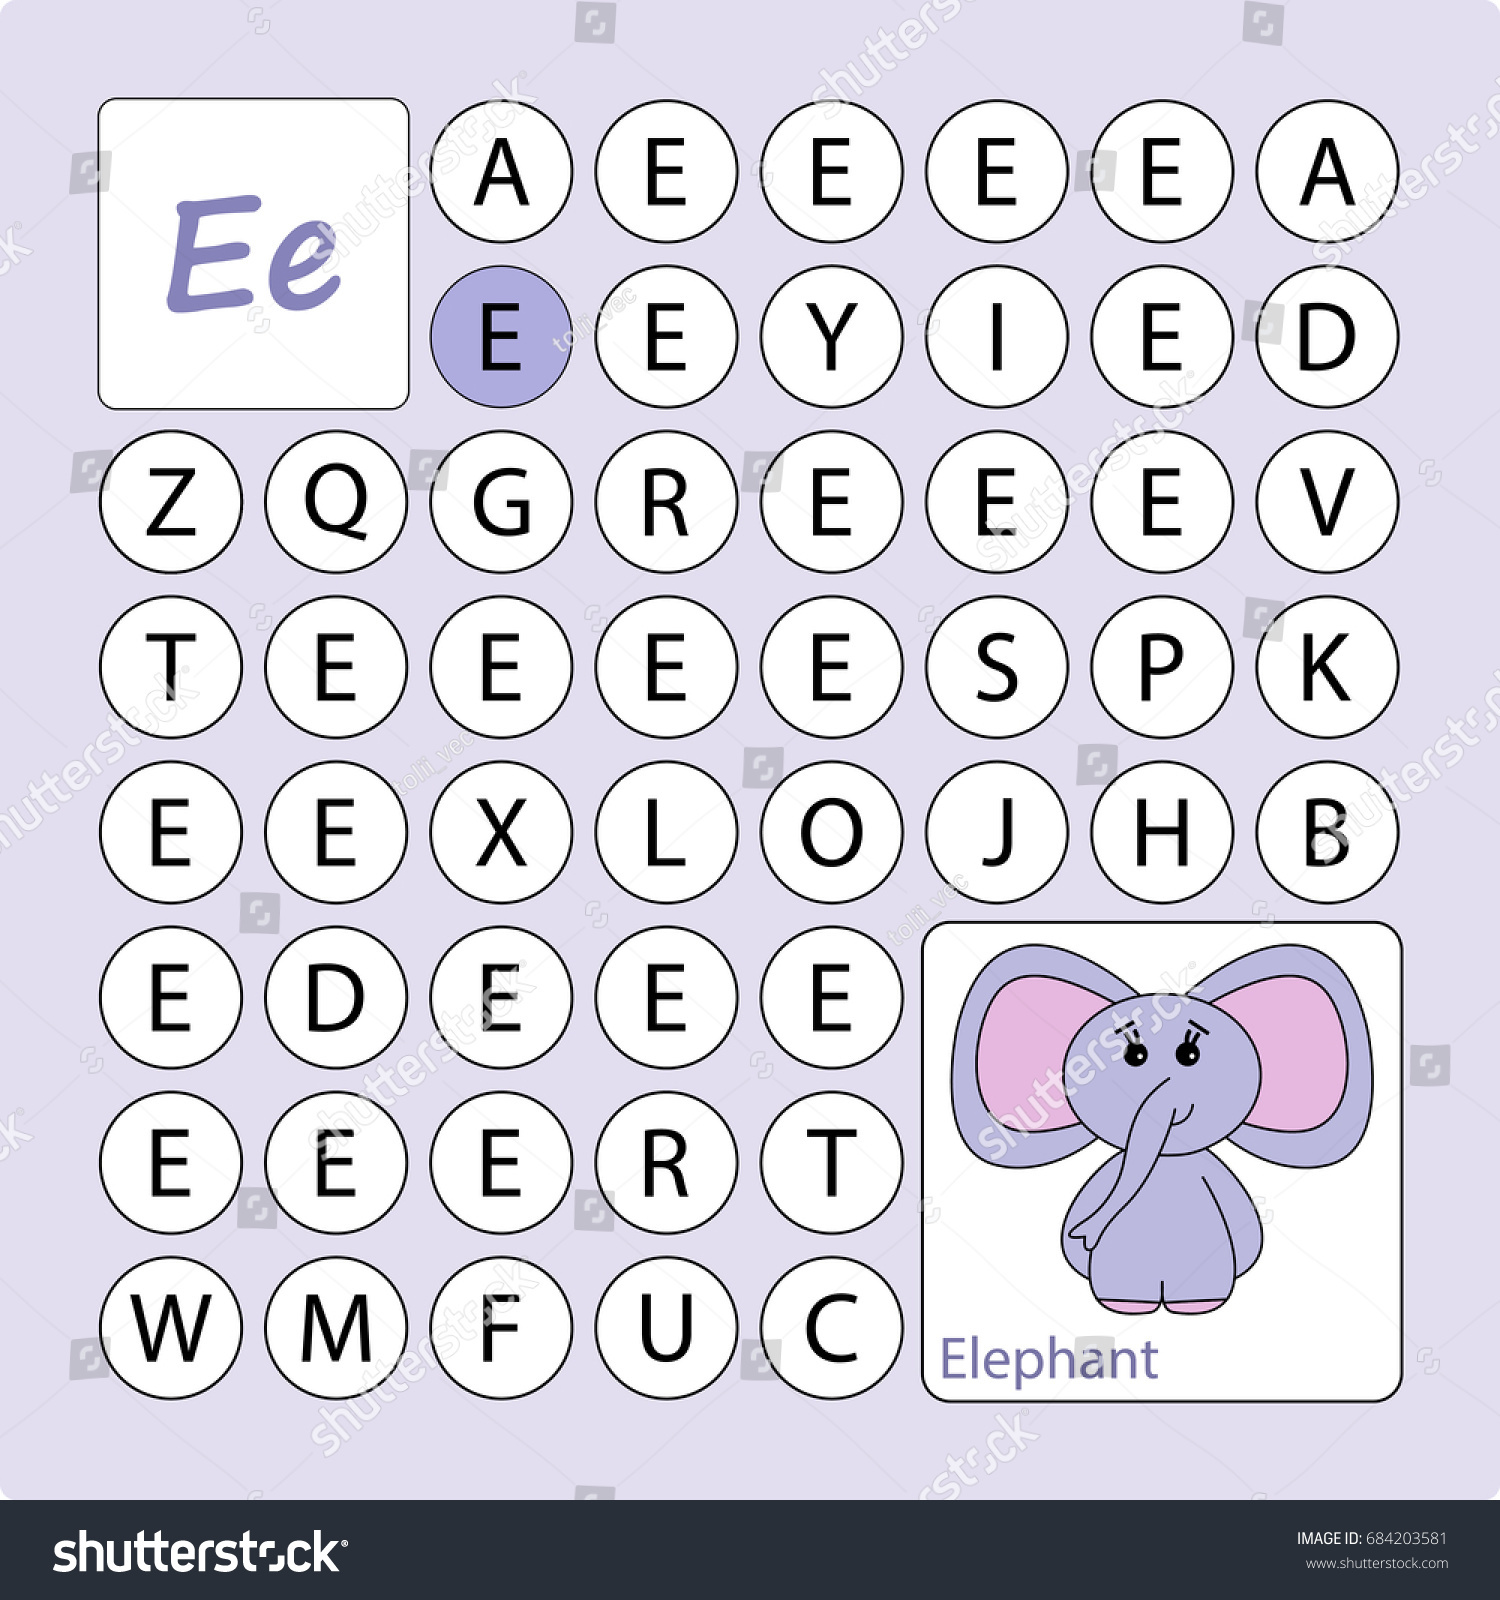 Alphabetical Puzzle Labyrinth Learning Letter E Stock